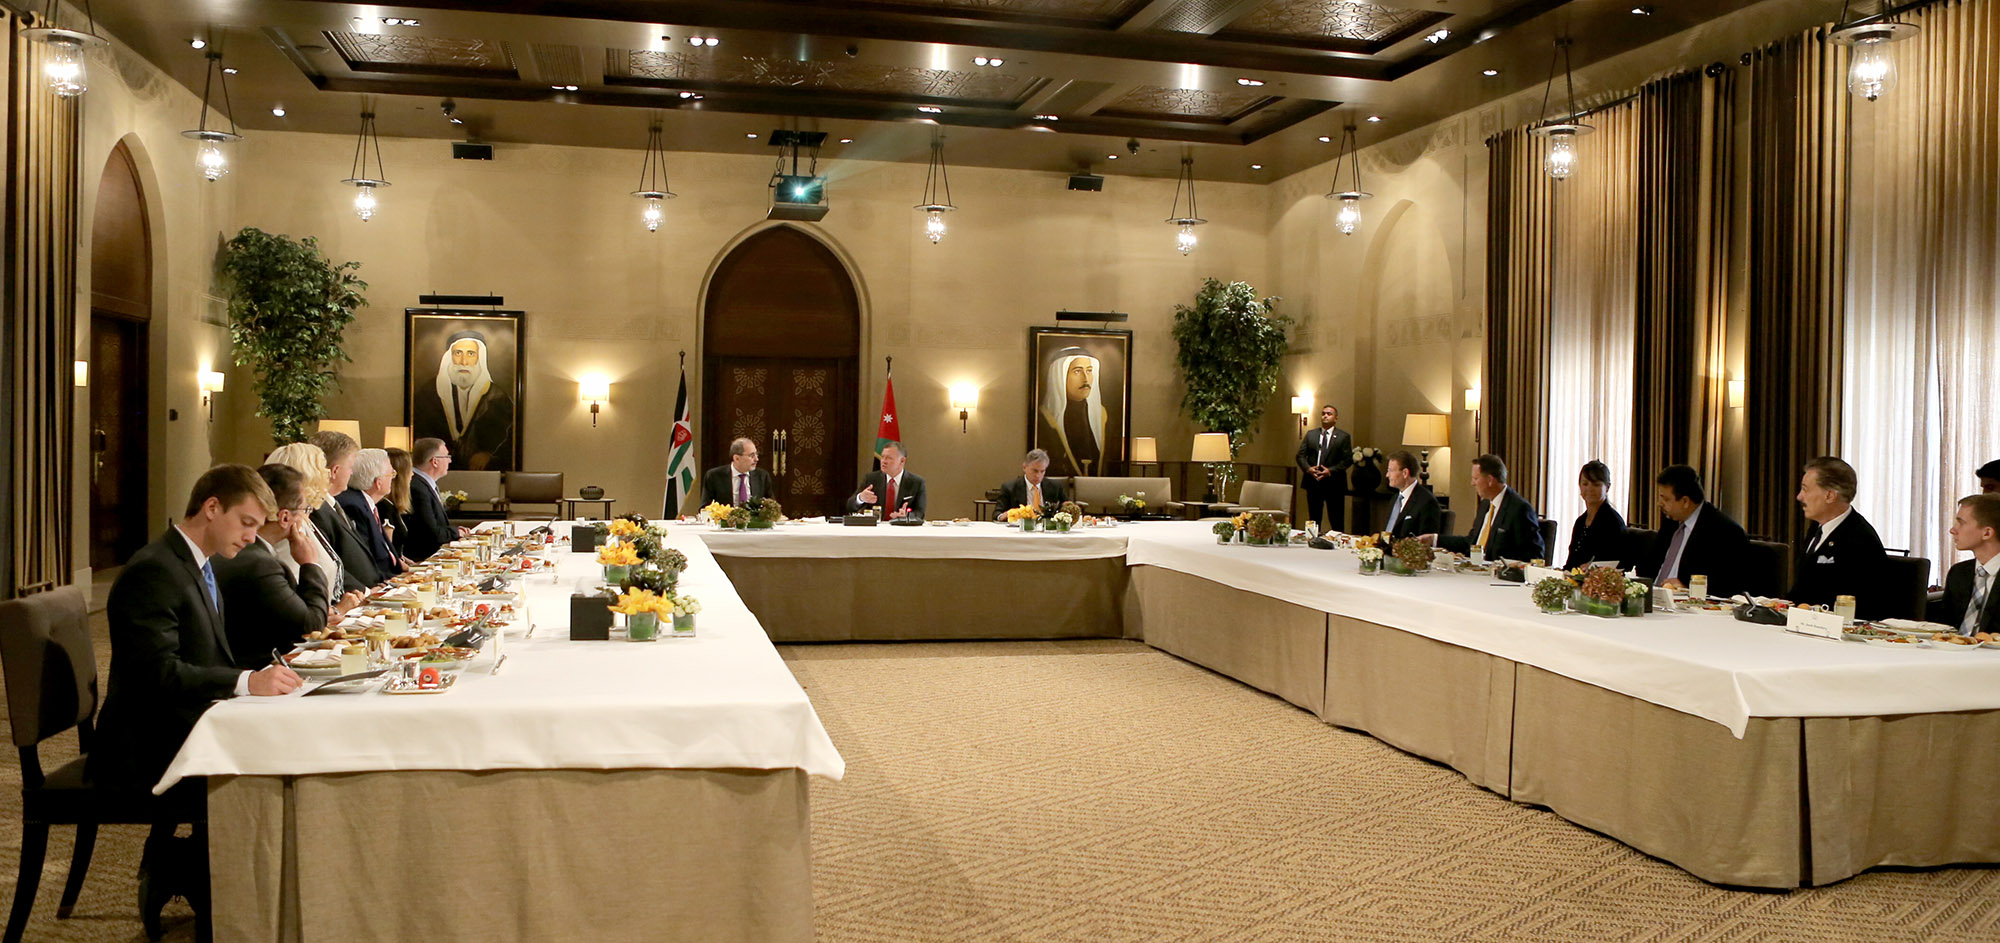 His Majesty King Abdullah II (center head table) welcomes a delegation of American Evangelical Christians at Al-Husseiniya Palace to discuss the strategic alliance between Jordan and the United States and Jordan's leadership in promoting peace and caring for the poor and the suffering.